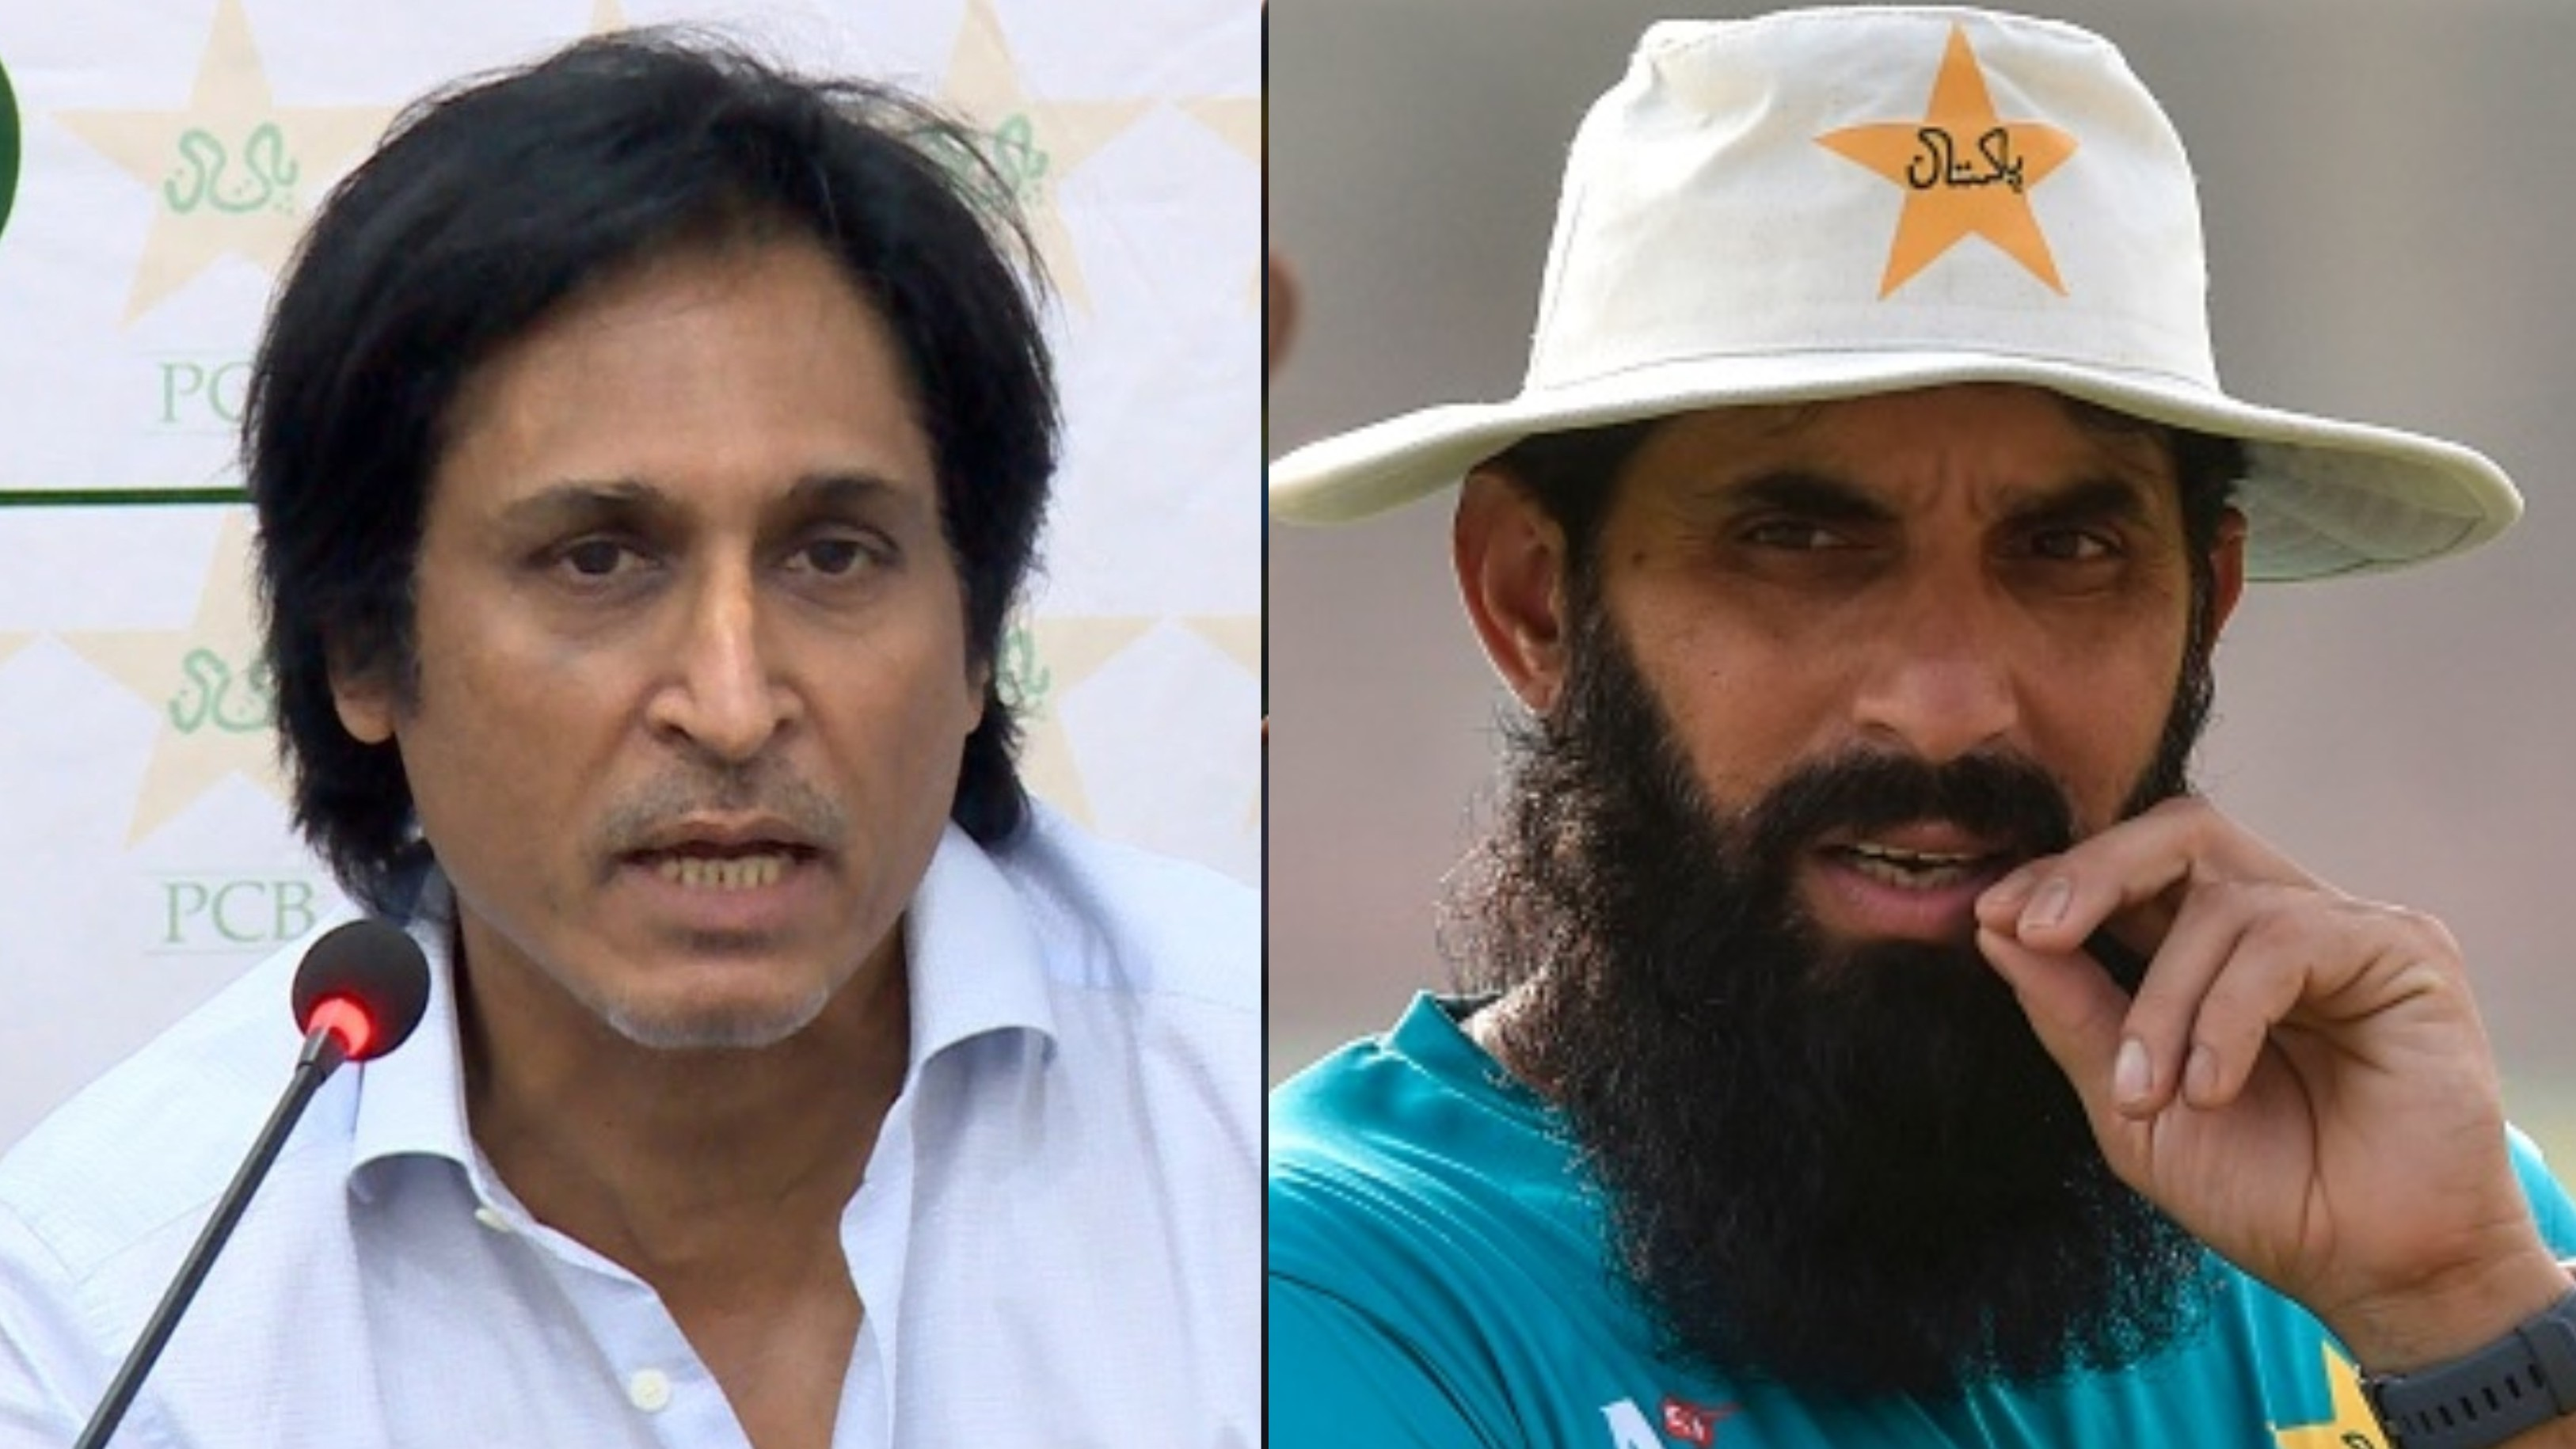 PAK v SL 2019: Misbah-ul-Haq overburdened by PCB, says Ramiz Raja after T20I series defeat